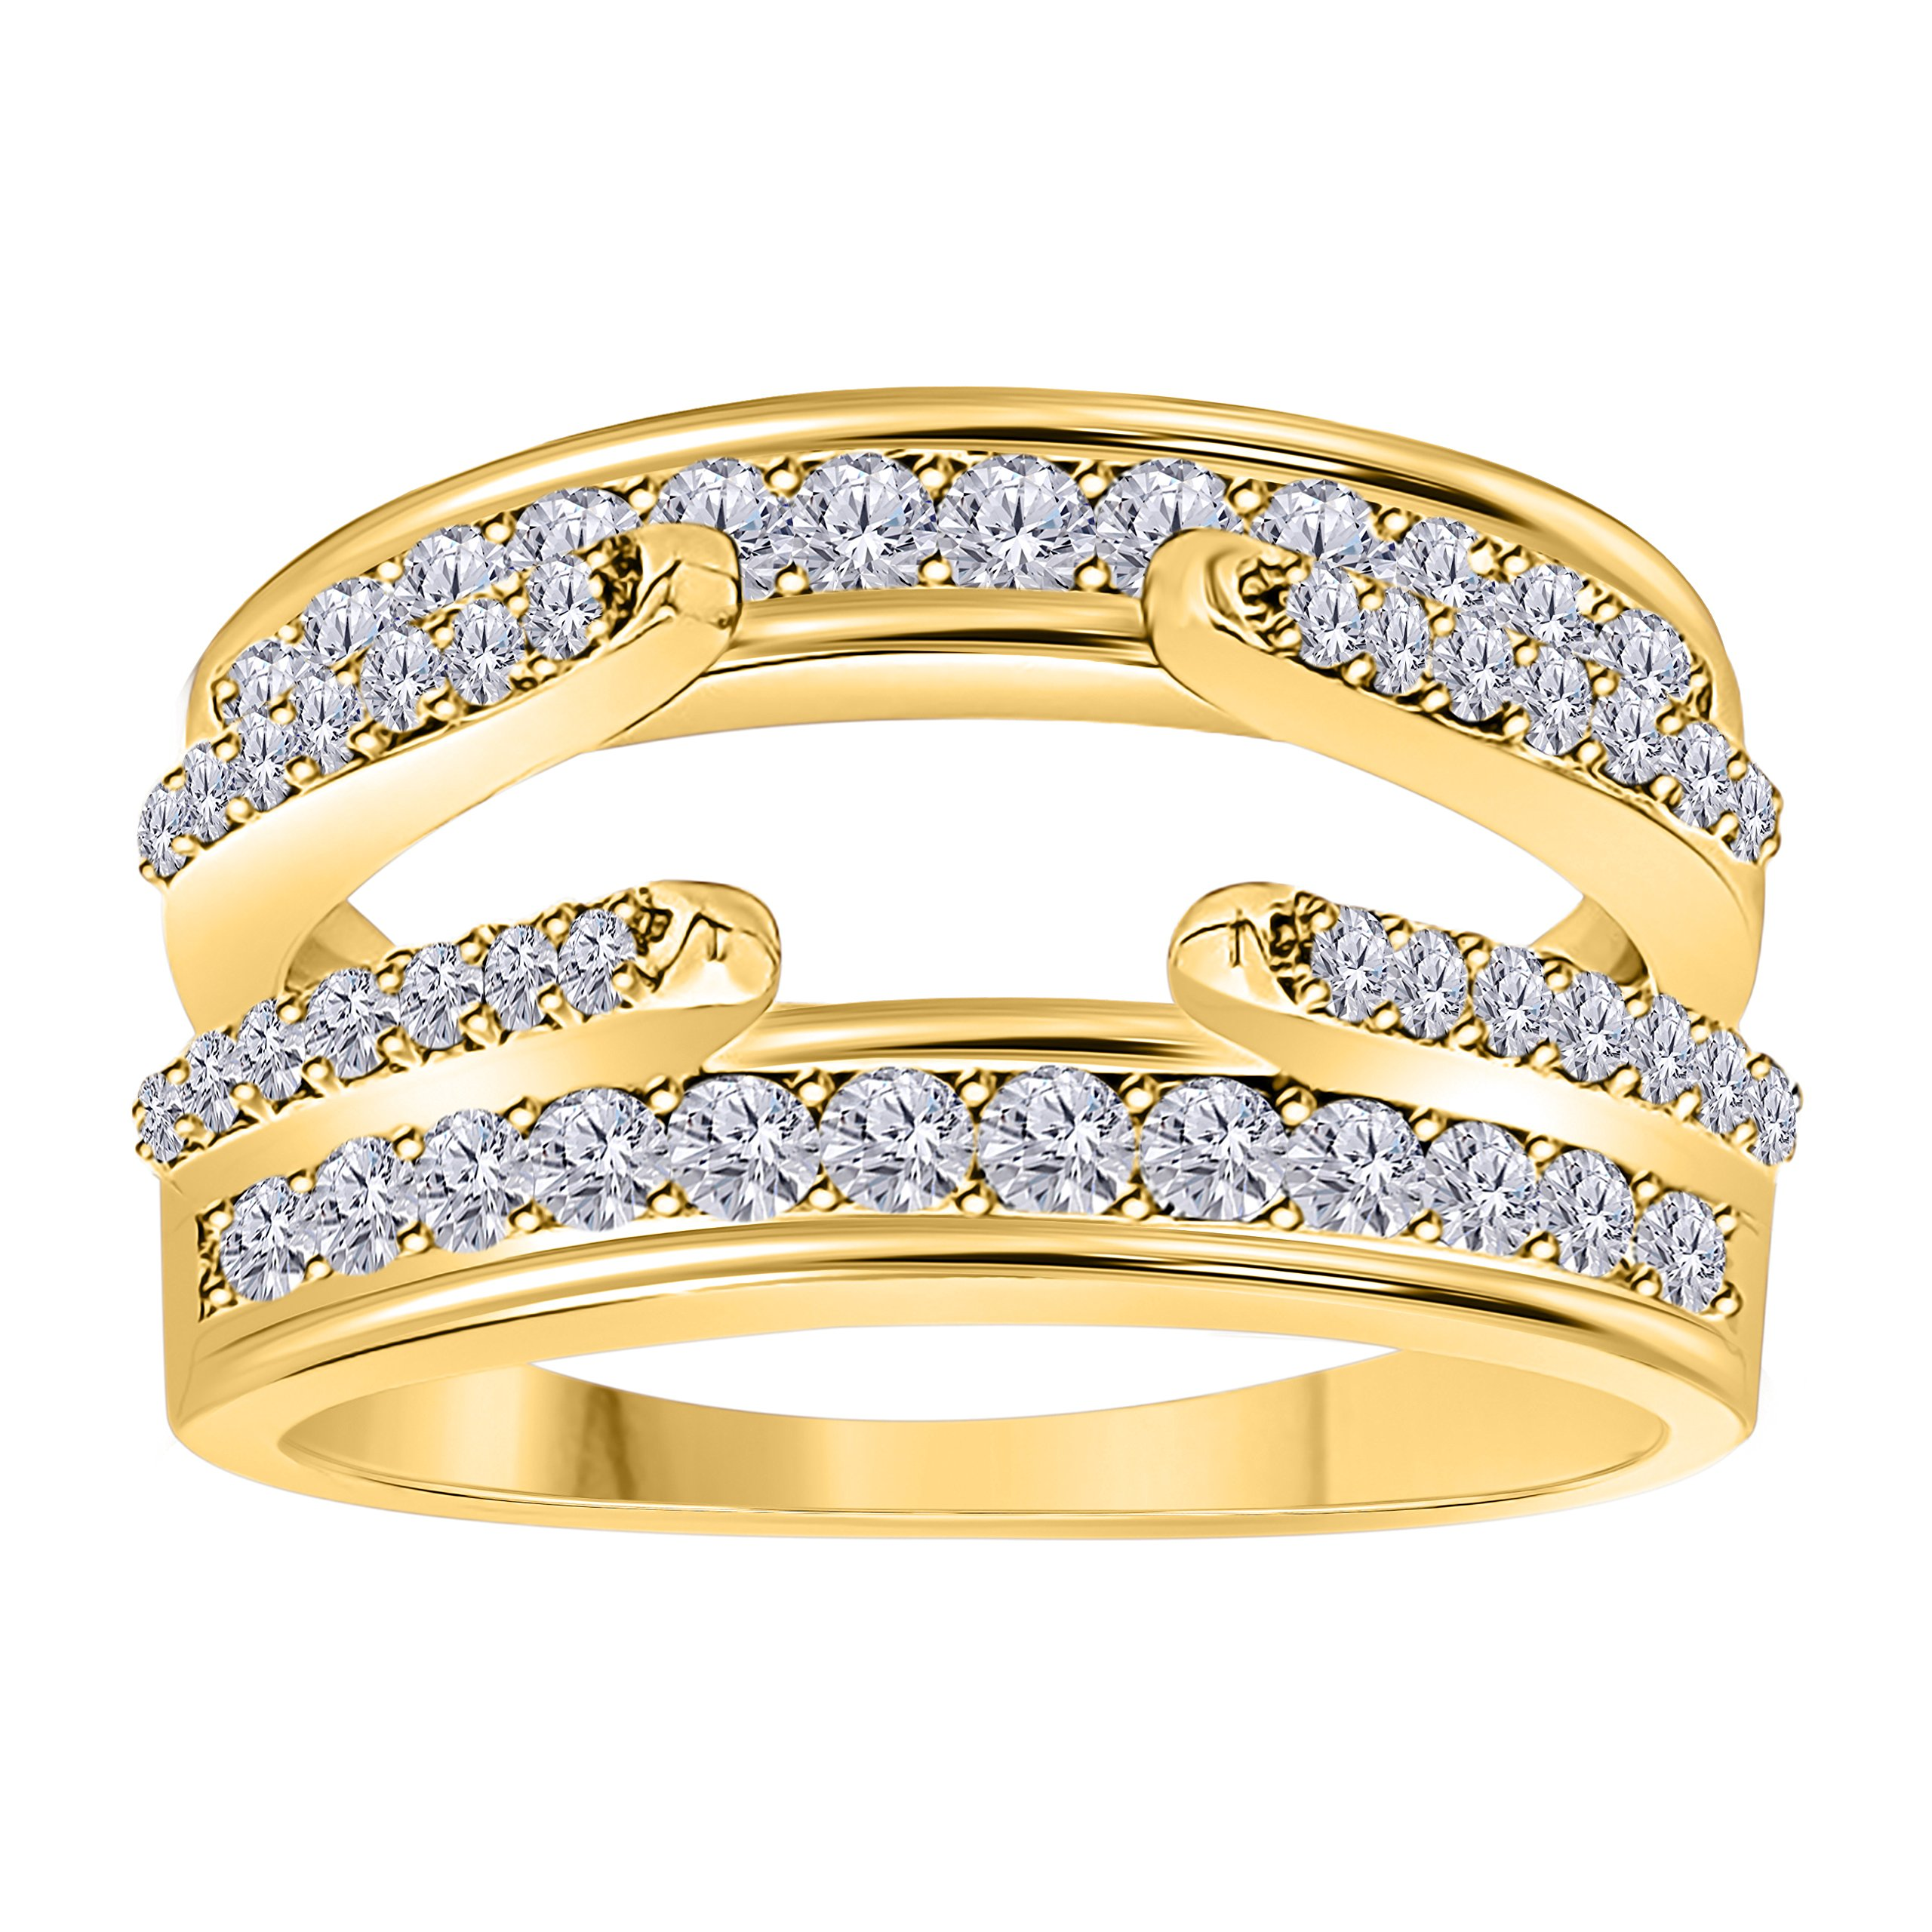 Gems and Jewels 14K Yellow Gold Finish Combination Curved Style Cathedral Wedding Ring Guard Enhancer with Cubic Zirconia 1.00 Ct by Gems and Jewels